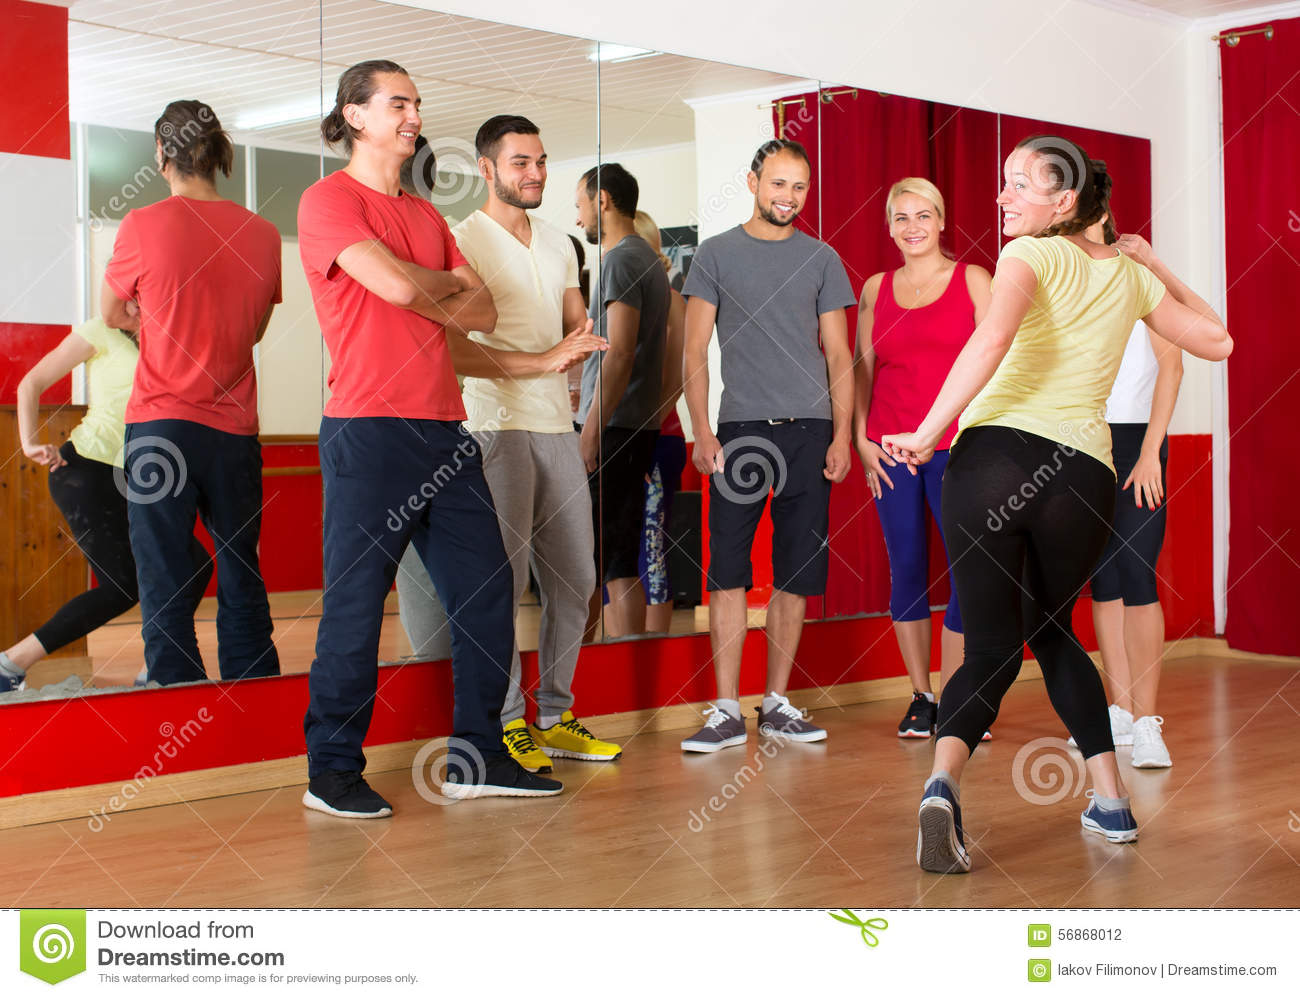 Dancing Teacher Showing New Moves Stock Photo - Image: 56868012